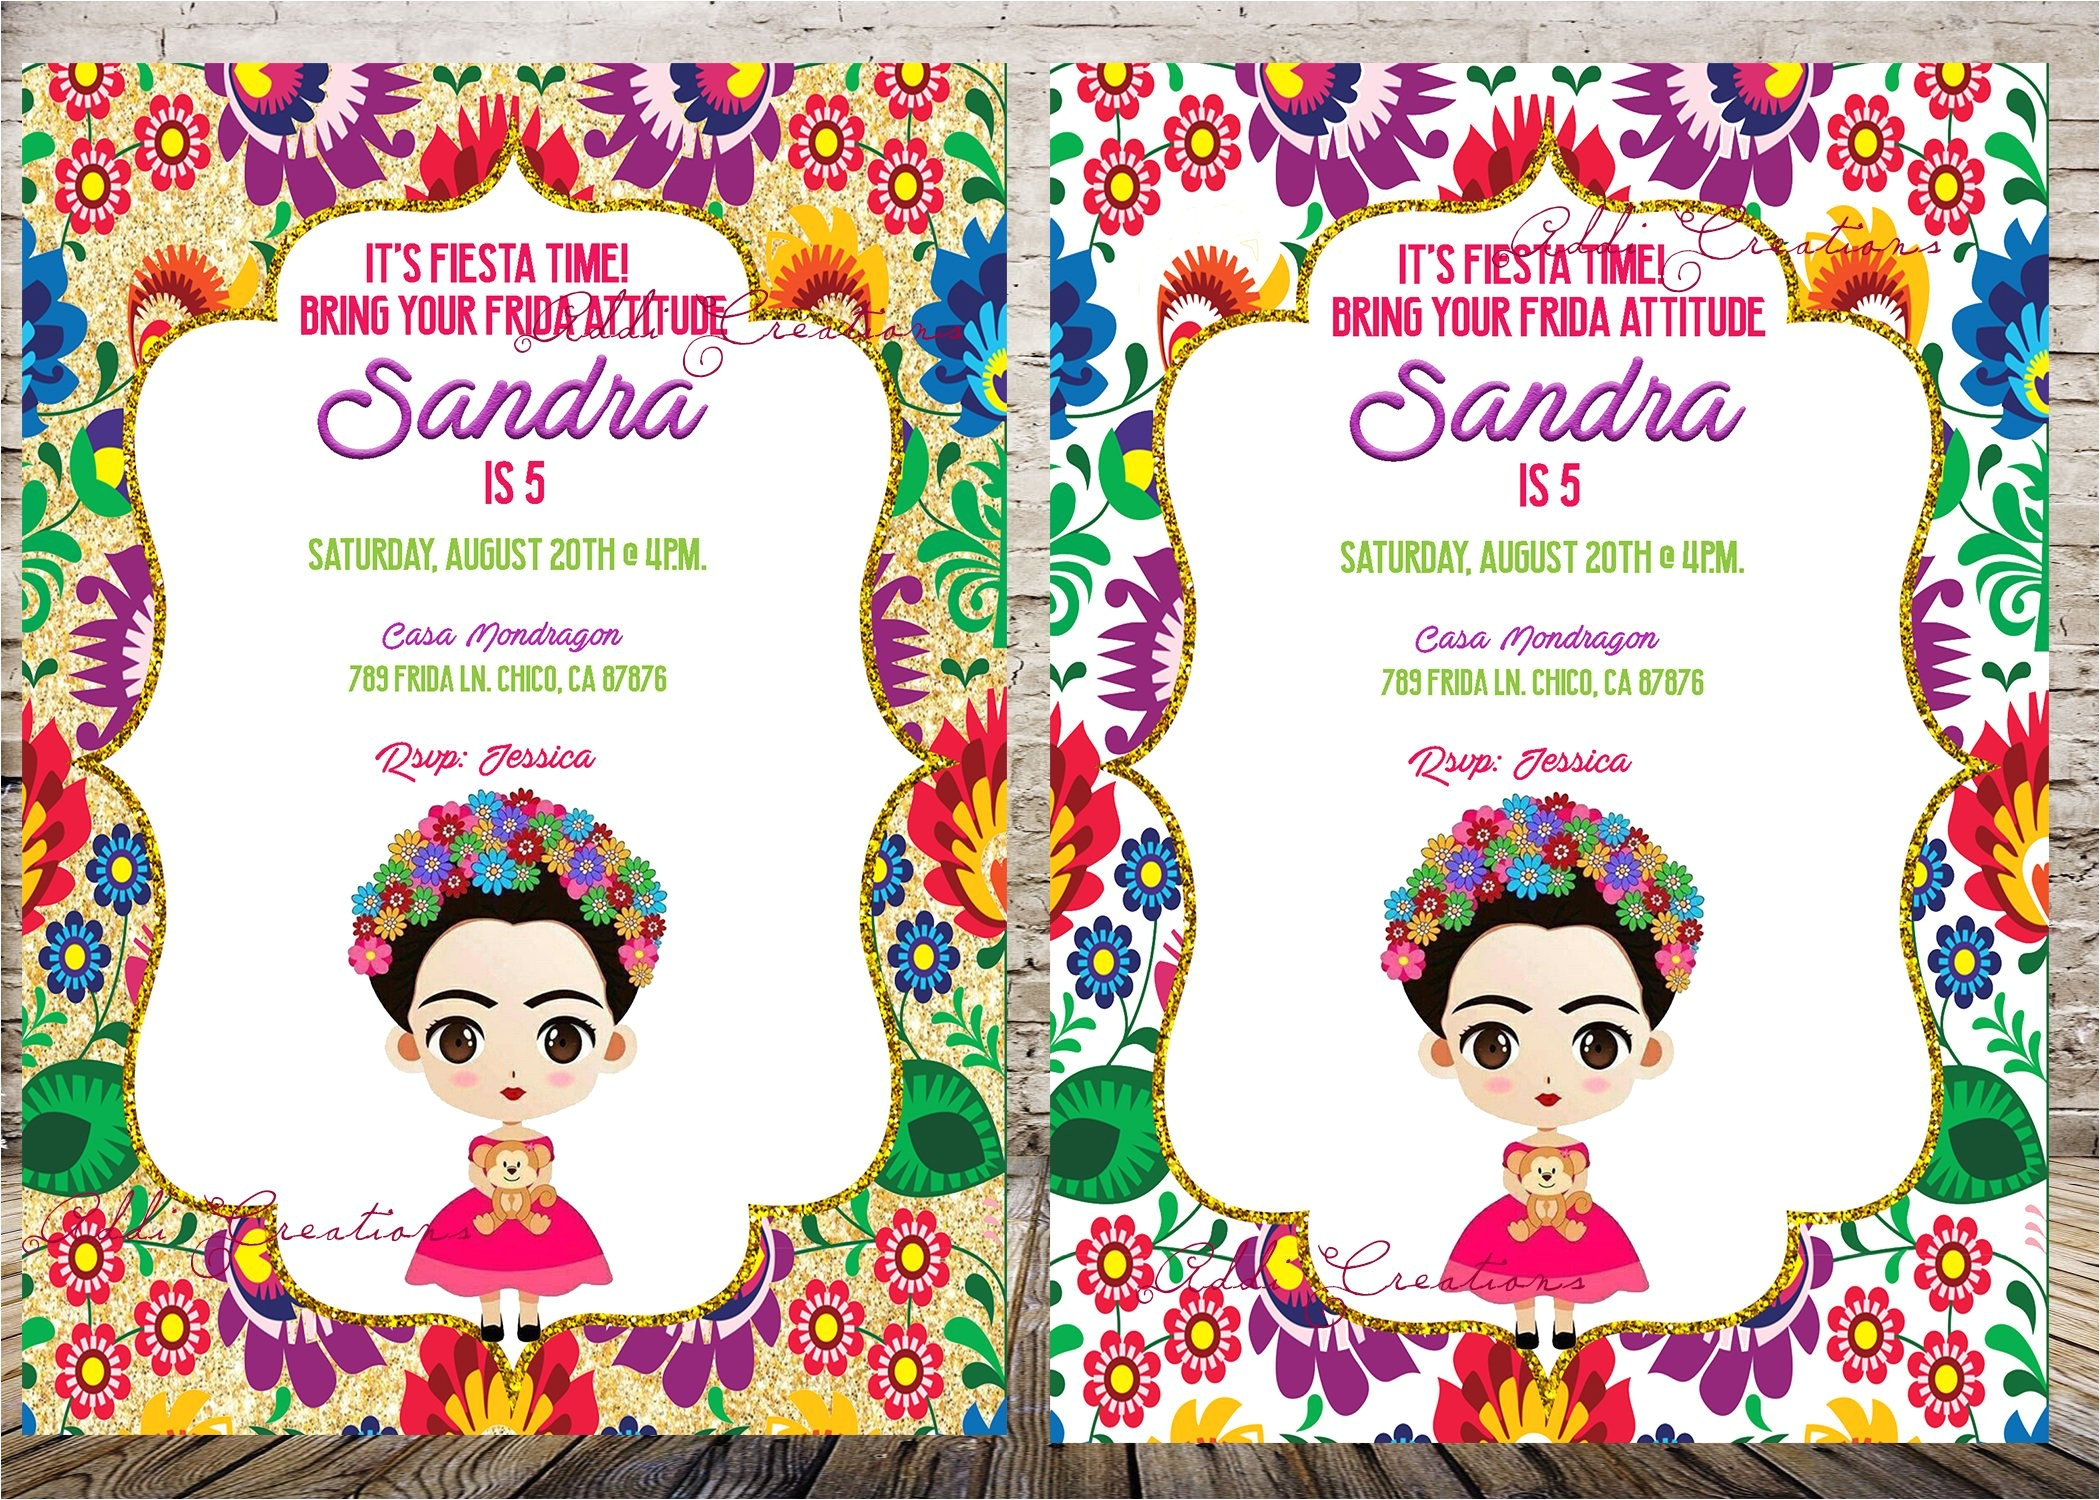 frida kahlo invitation invitaciones